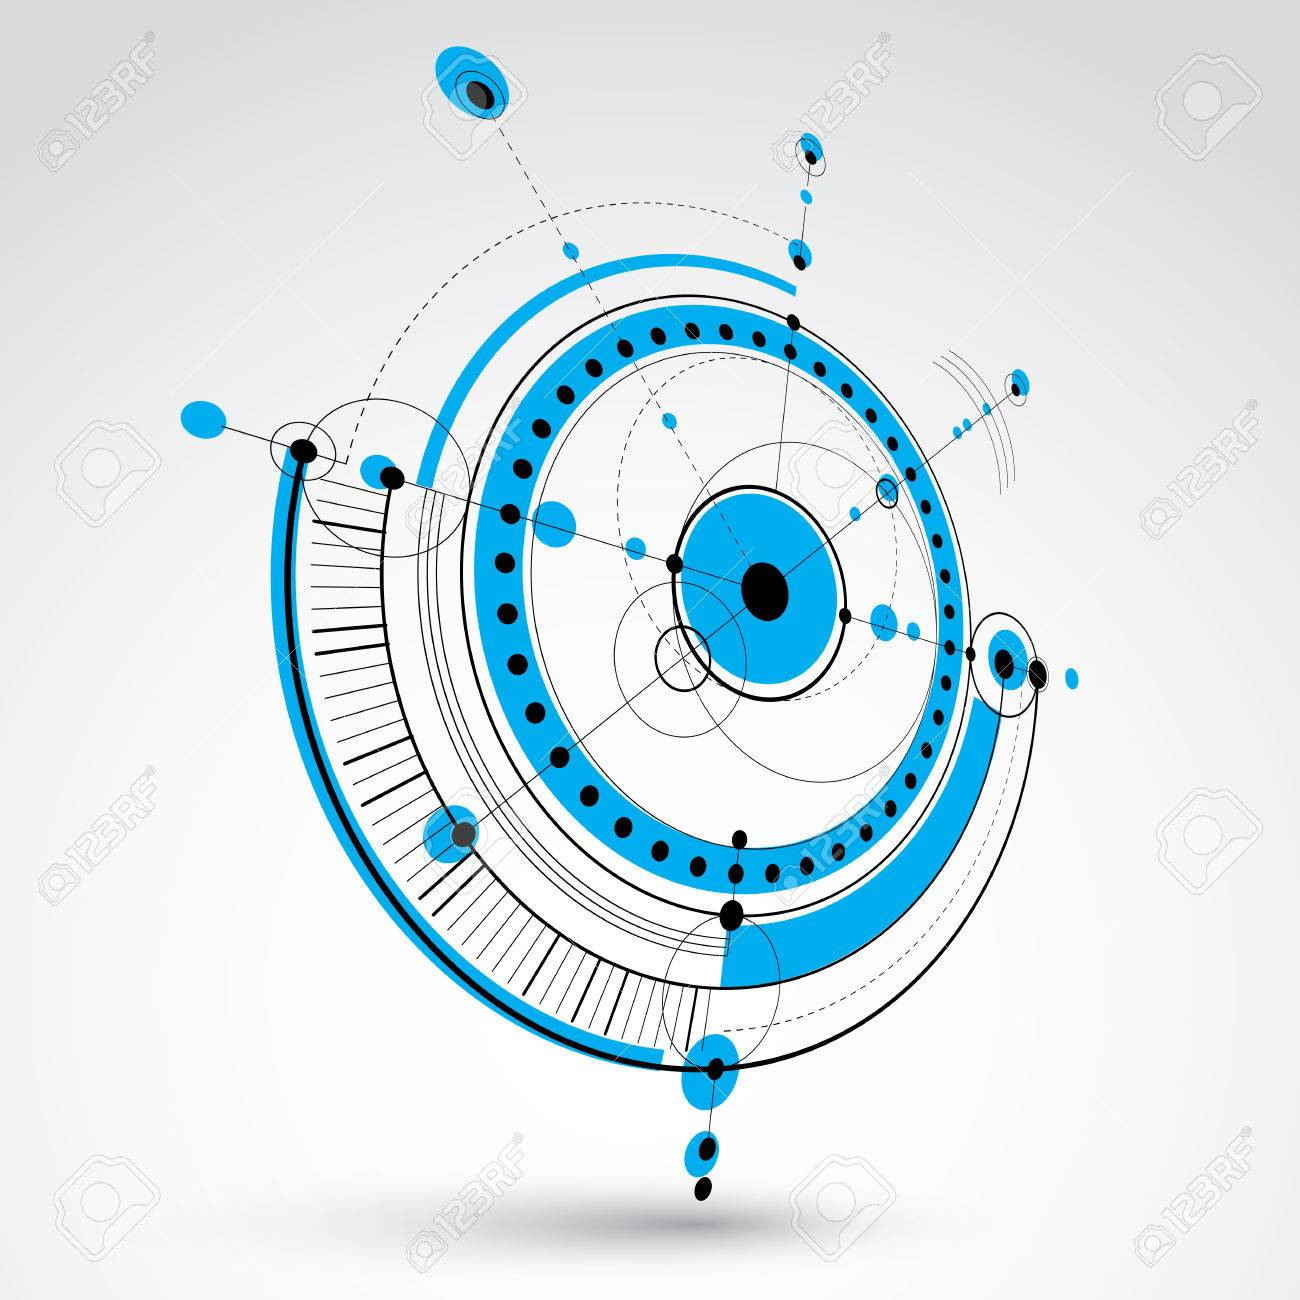 Technical drawing made using dashed lines and geometric circles blue perspective vector wallpaper created in